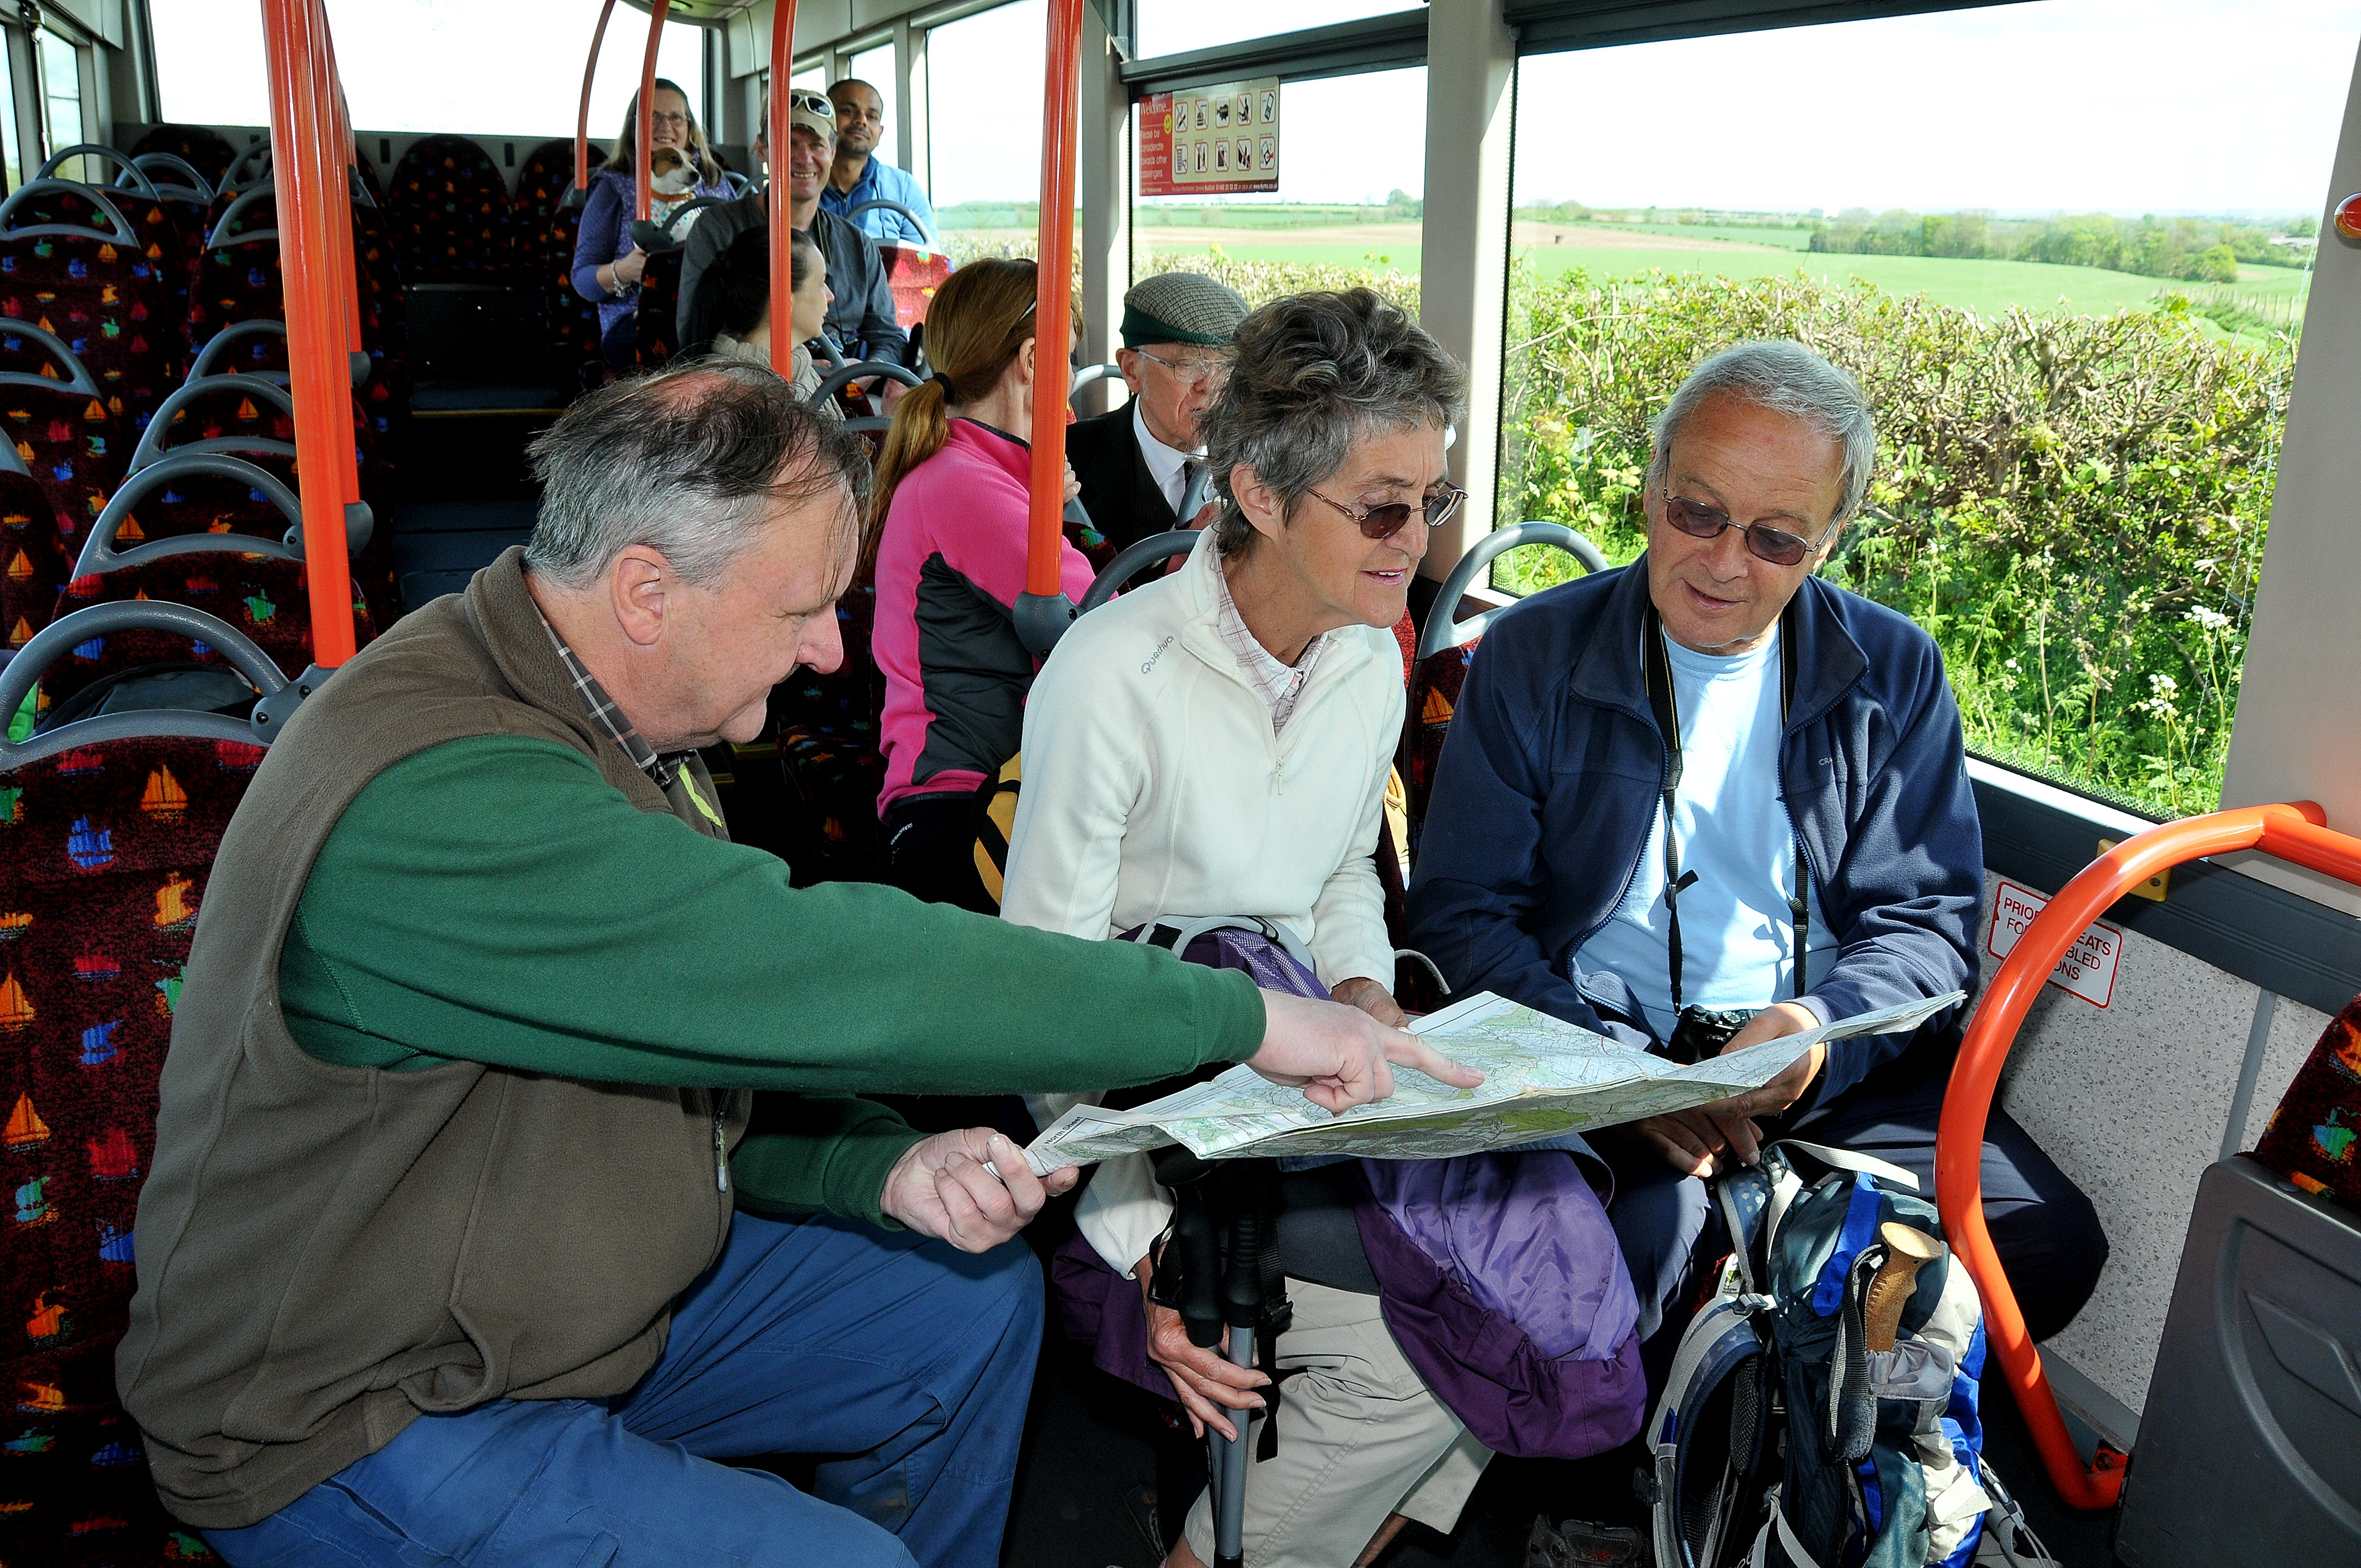 Walkers sit on a bus, looking at an ordance survey map